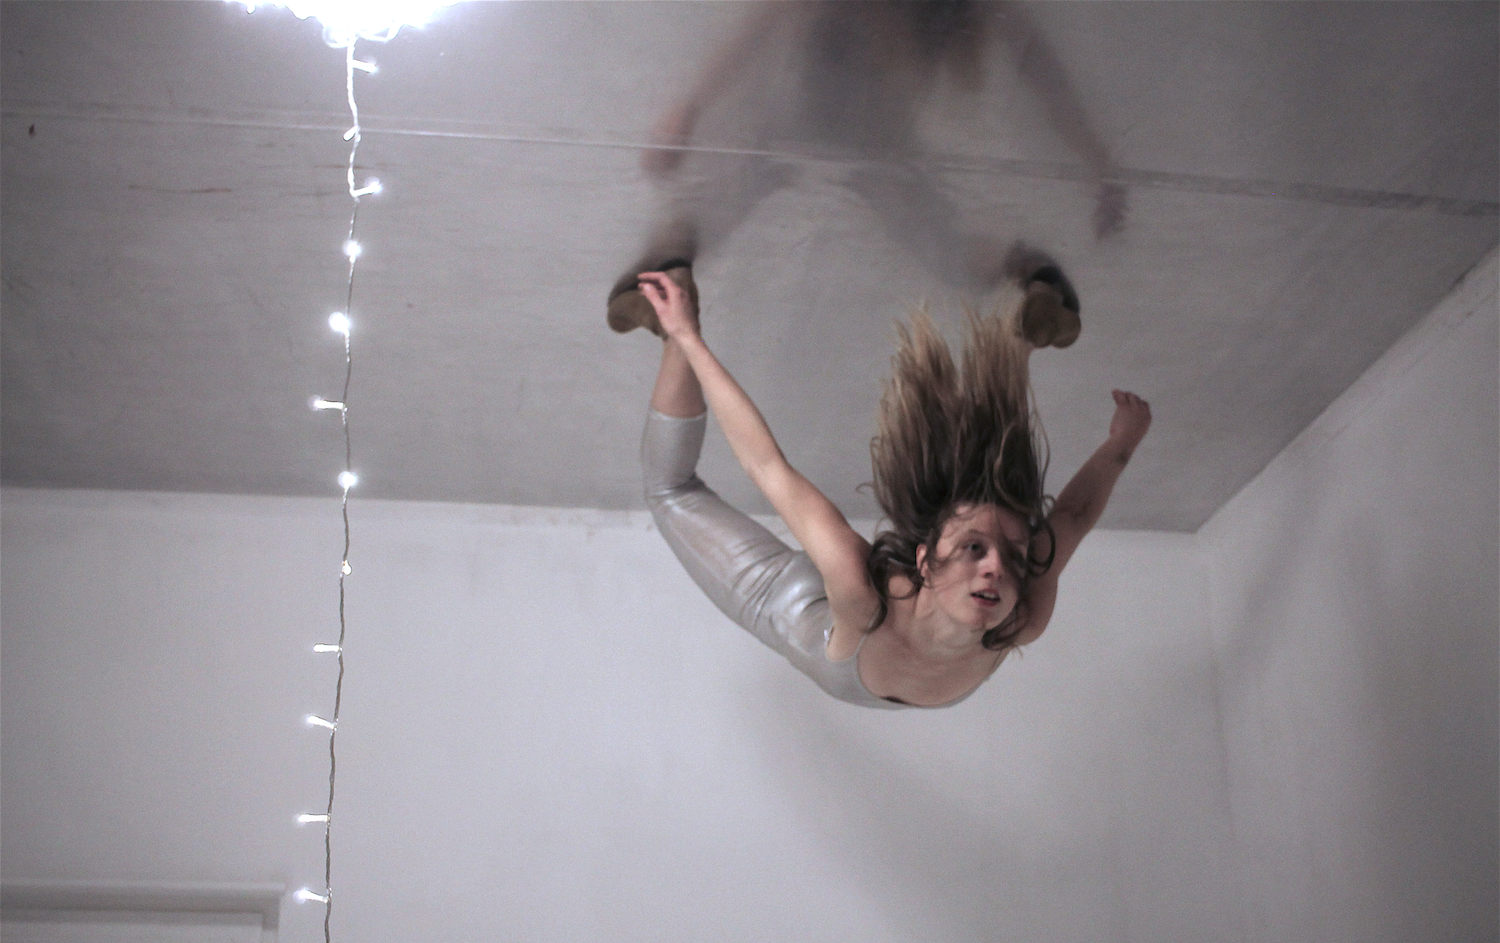 backsteinhaus produktion | Tanztheater // Physical Theatre // Dance Theatre